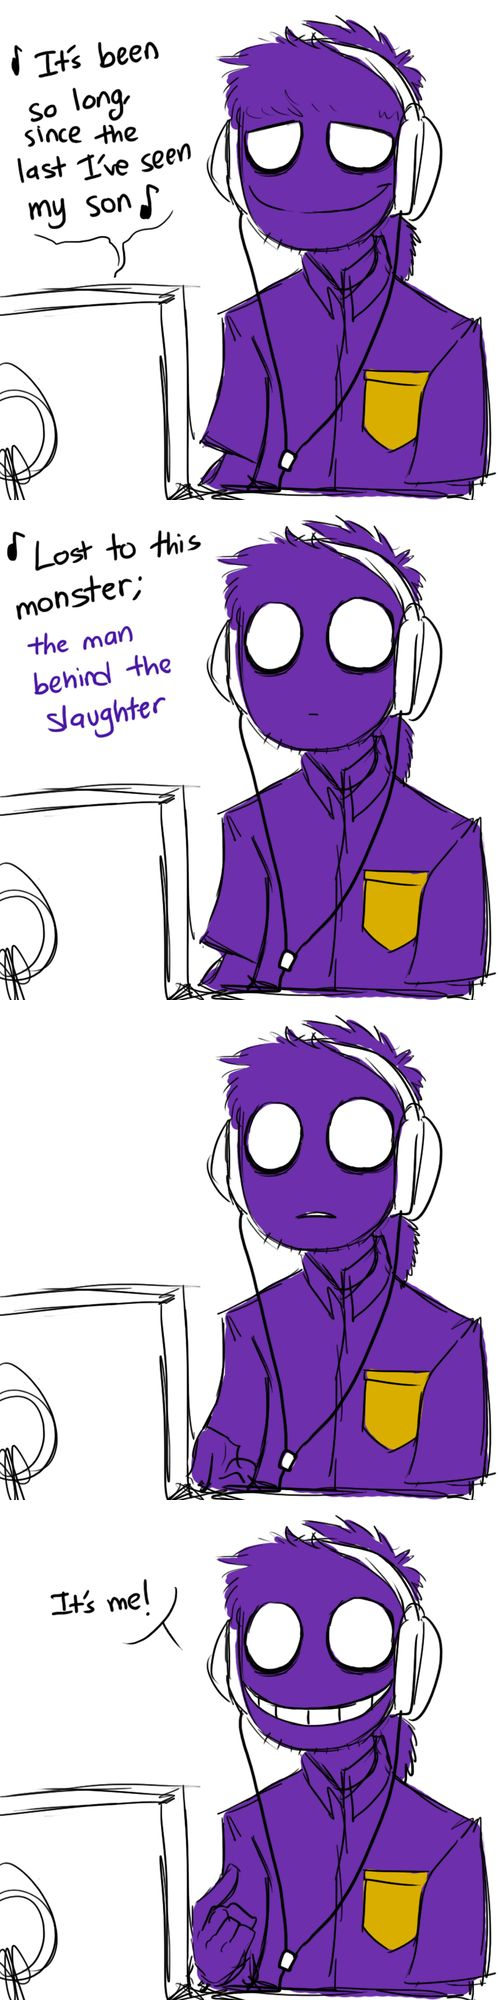 Phone guy x purple guy fanfic lemon - If Purple Guy Stumbled Upon Tlt S It S Been So Long Song